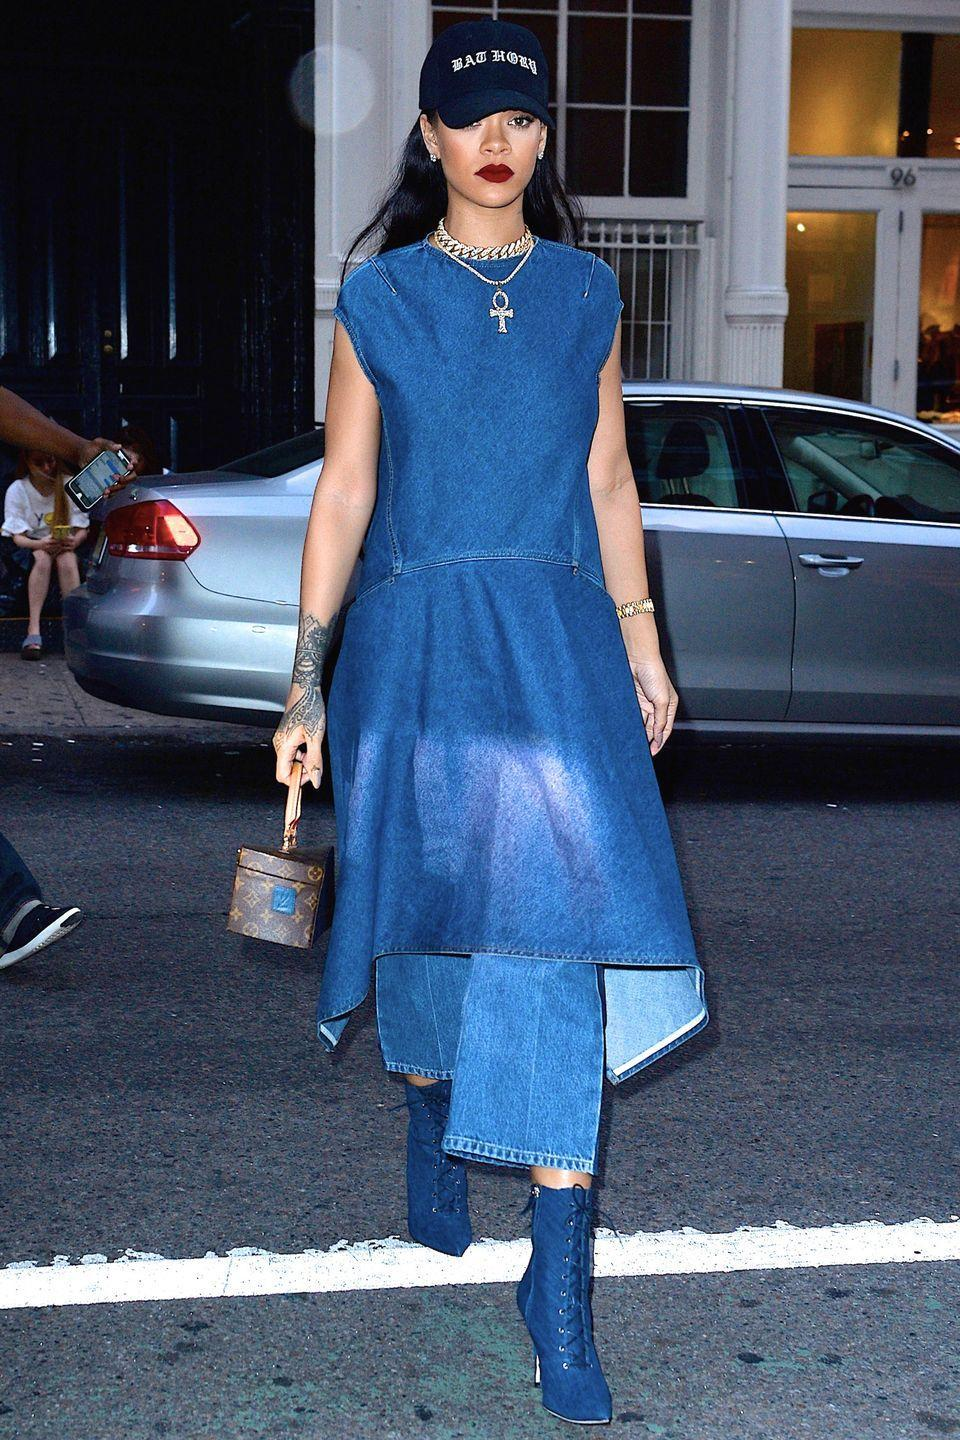 <p>The singer wears denim-on-denim in a Balenciaga dress, wide-leg jeans and Manolo Blahnik boots, with layered necklaces, a Louis Vuitton bag and graphic baseball cap.</p>